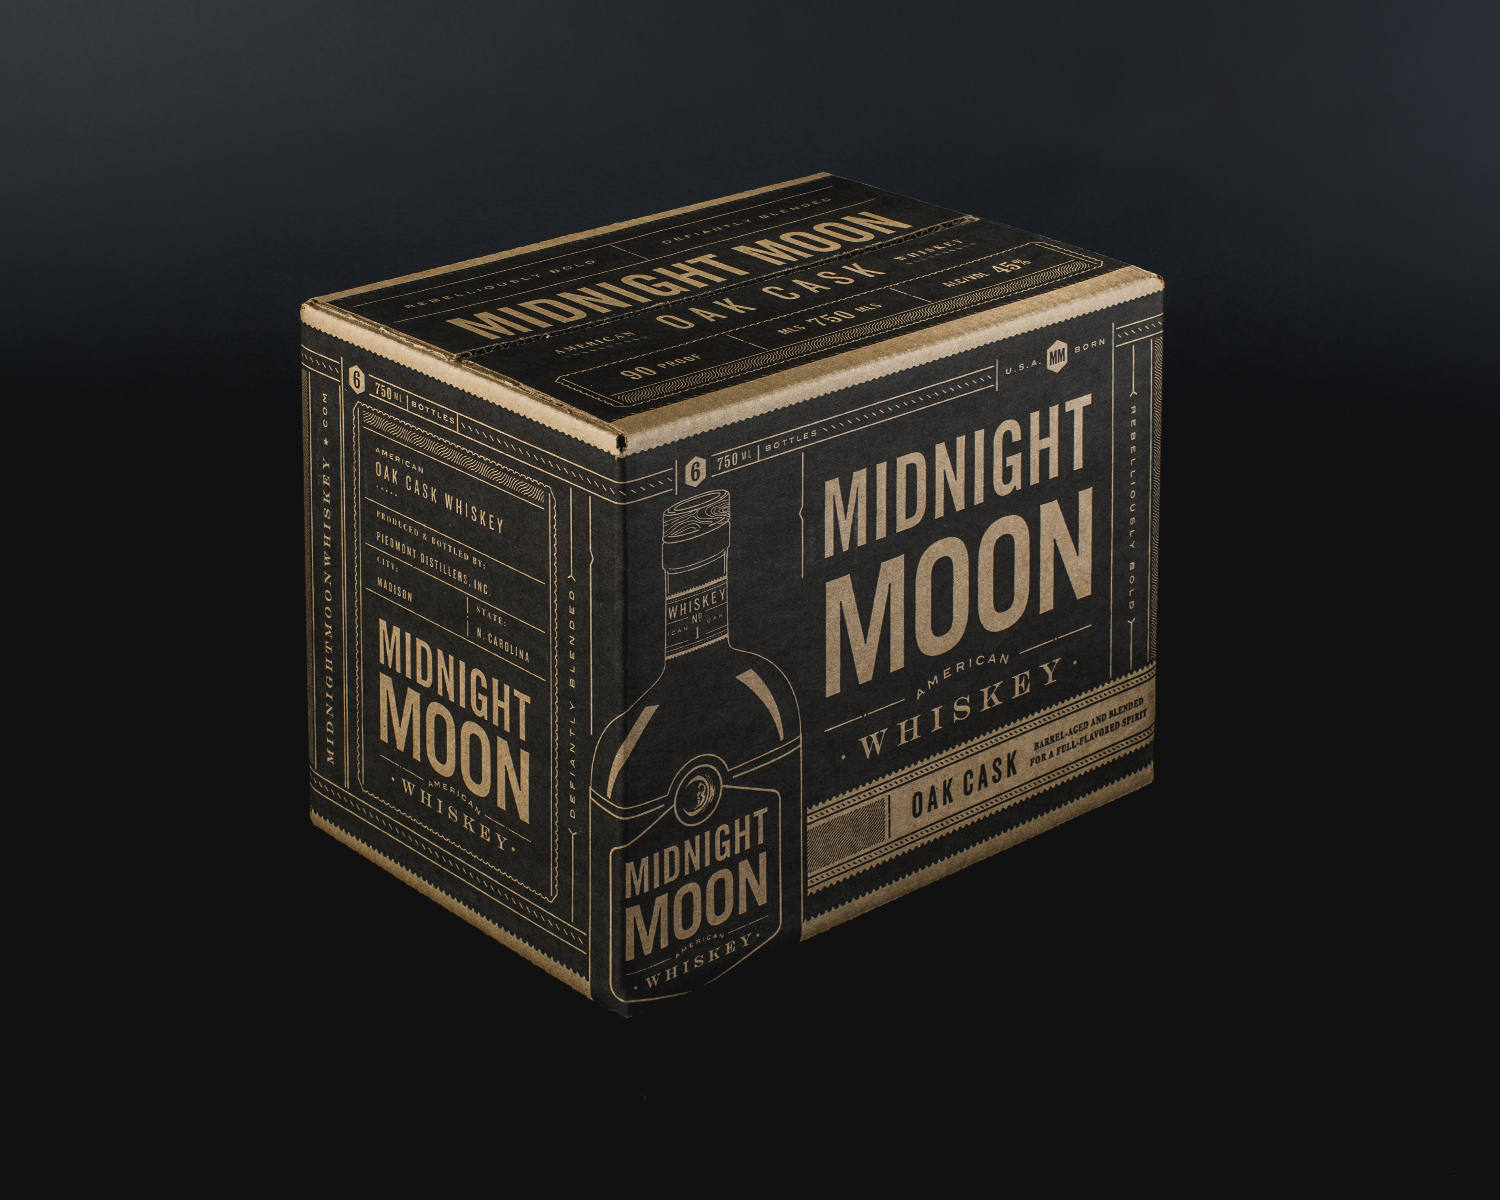 The shipper design reframes the bottle label for an experience that begins before the first pour.